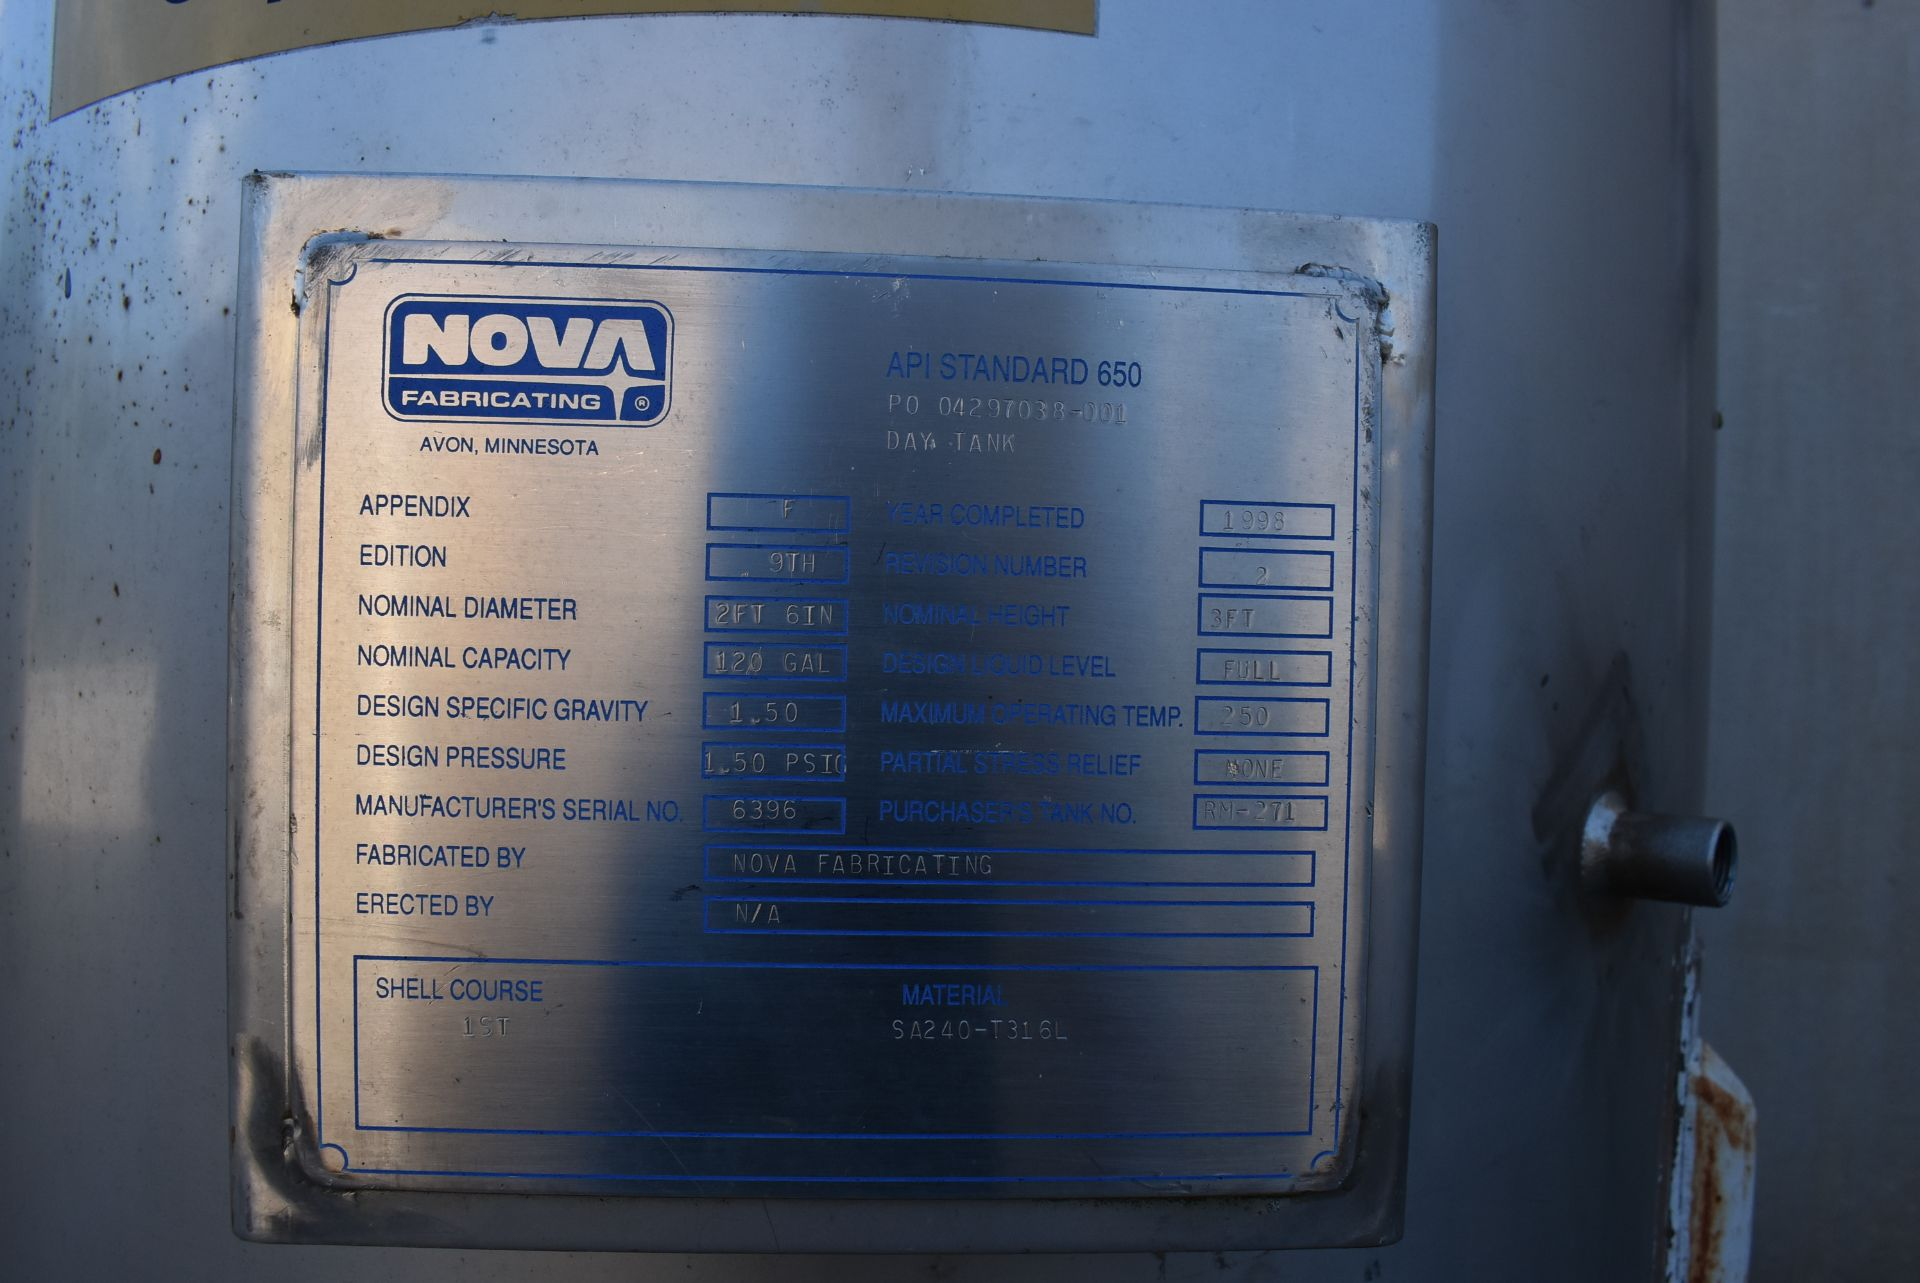 Nova Stainless Steel Tank, Rated 120 Gallons, 3' Height - Image 2 of 4